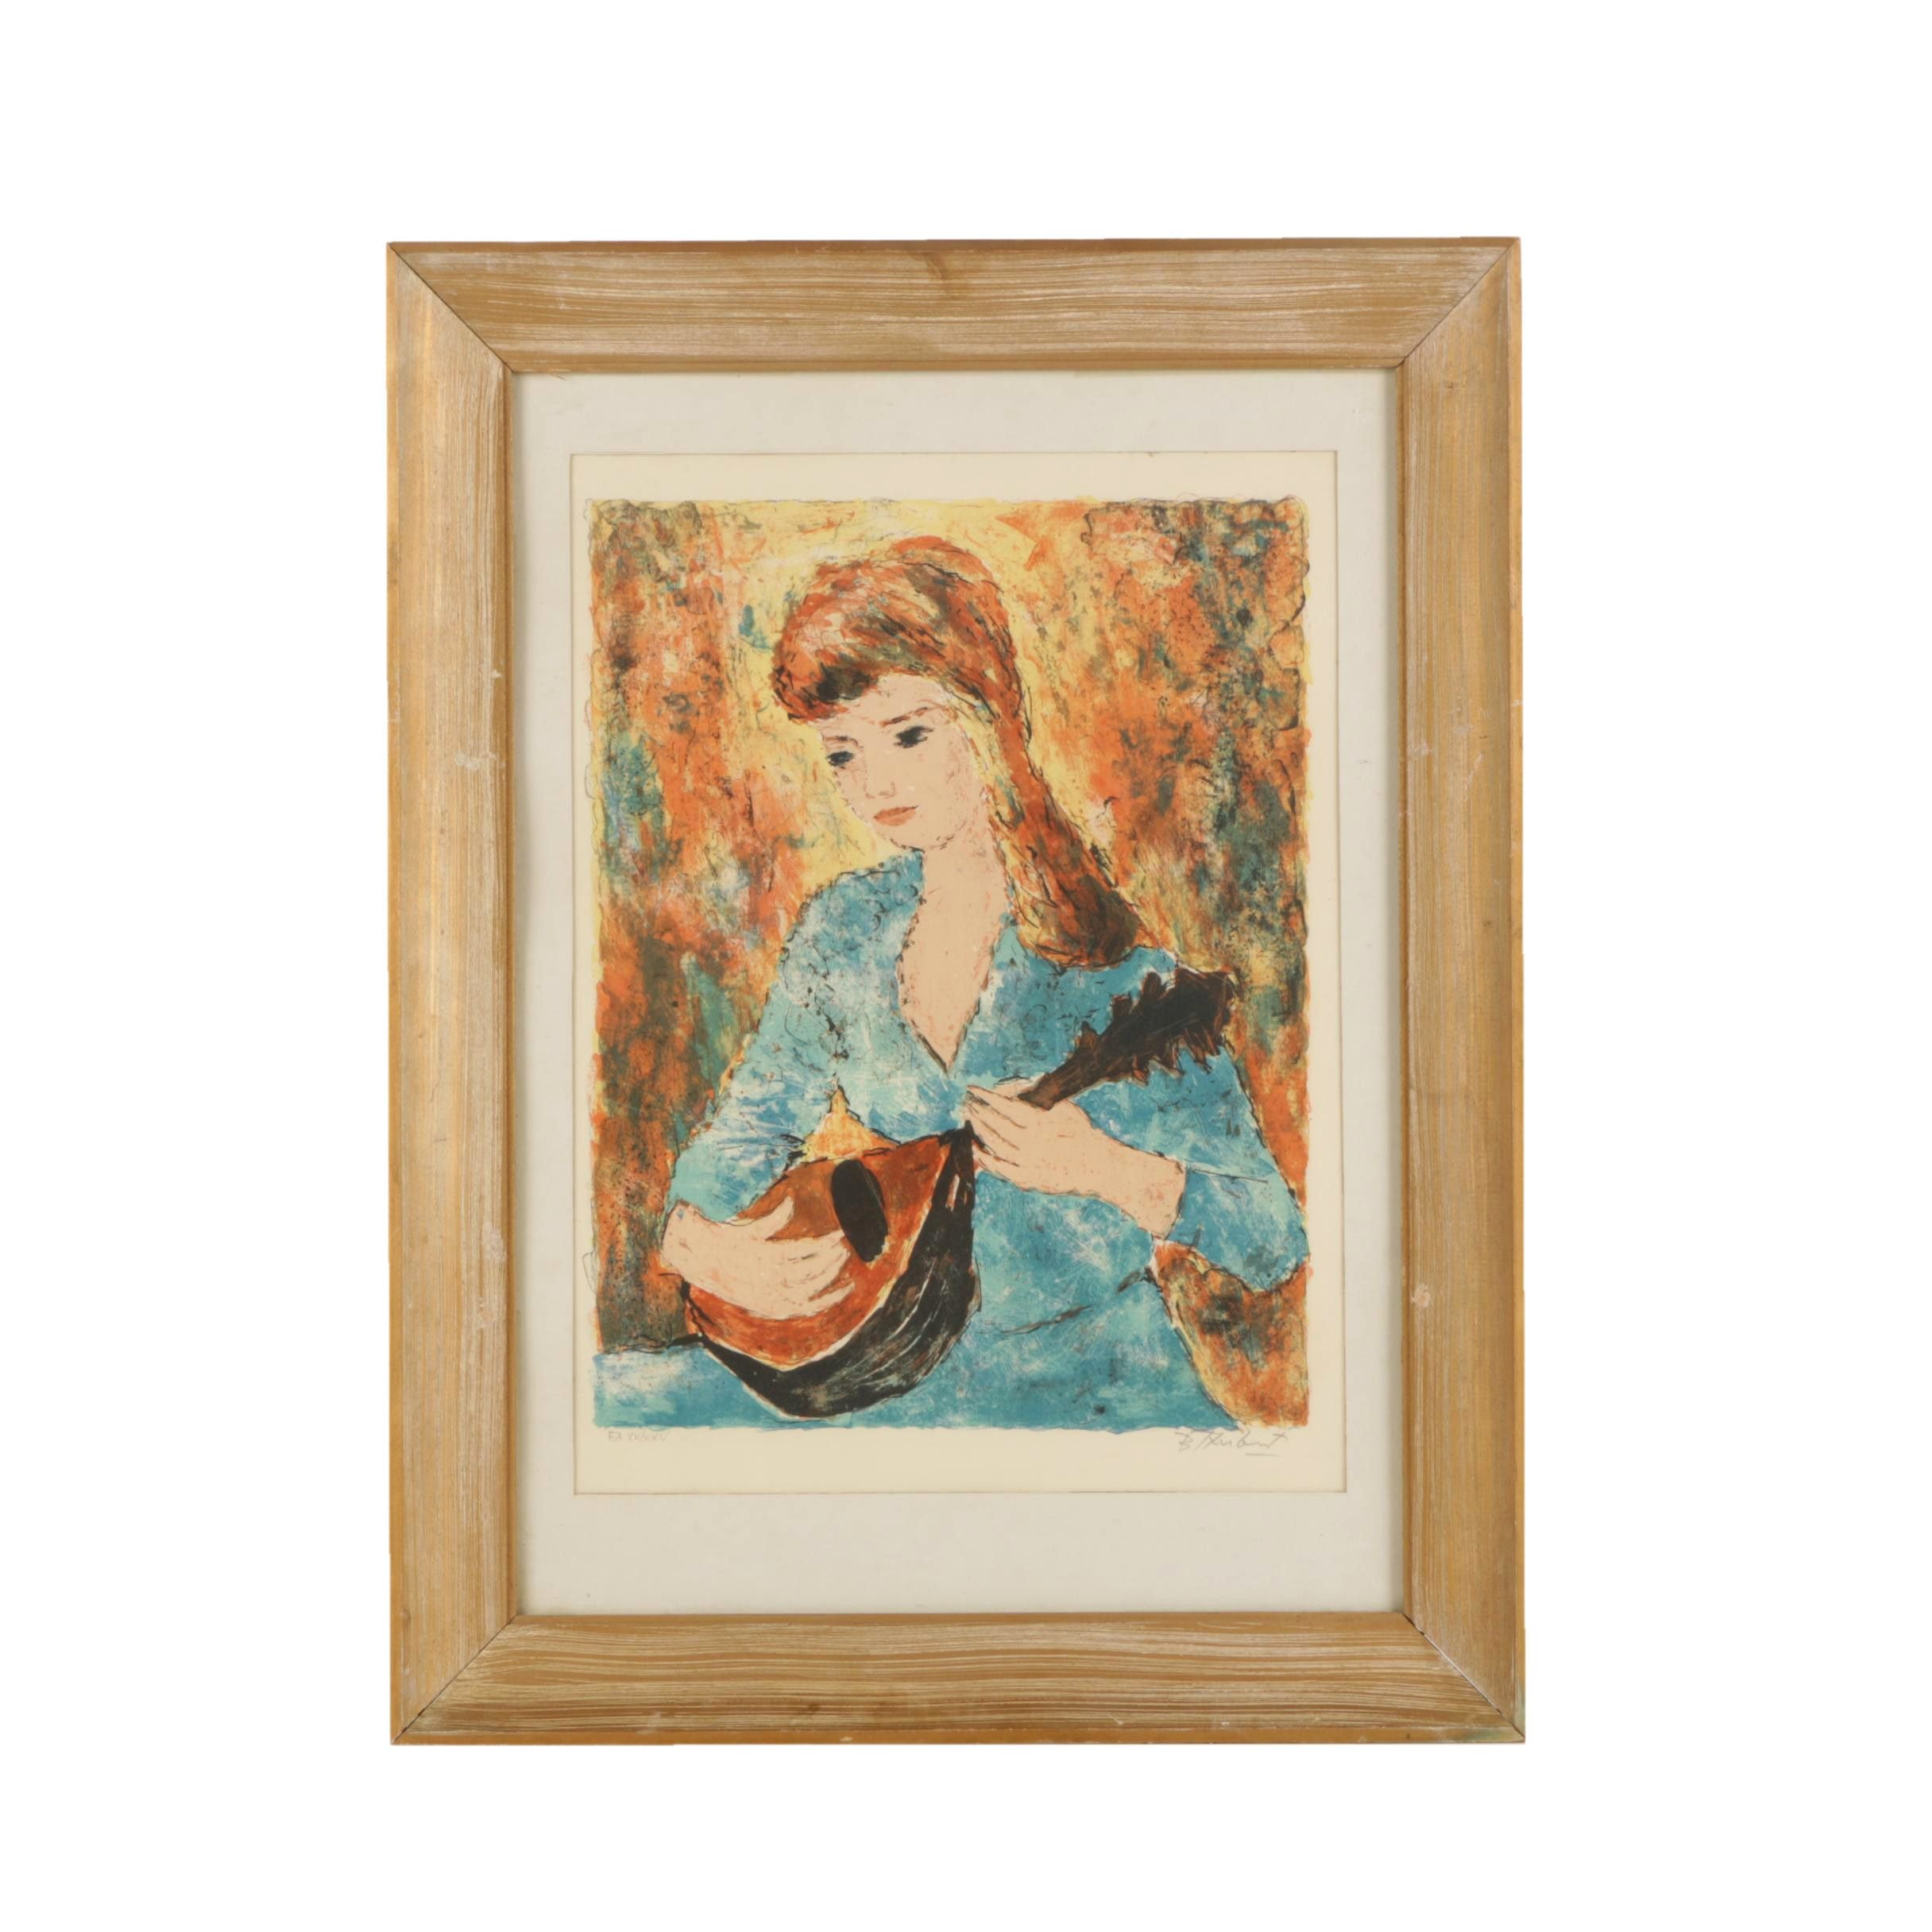 Bertoldo Taubert Artist's Proof Color Lithograph of Girl Playing Lute